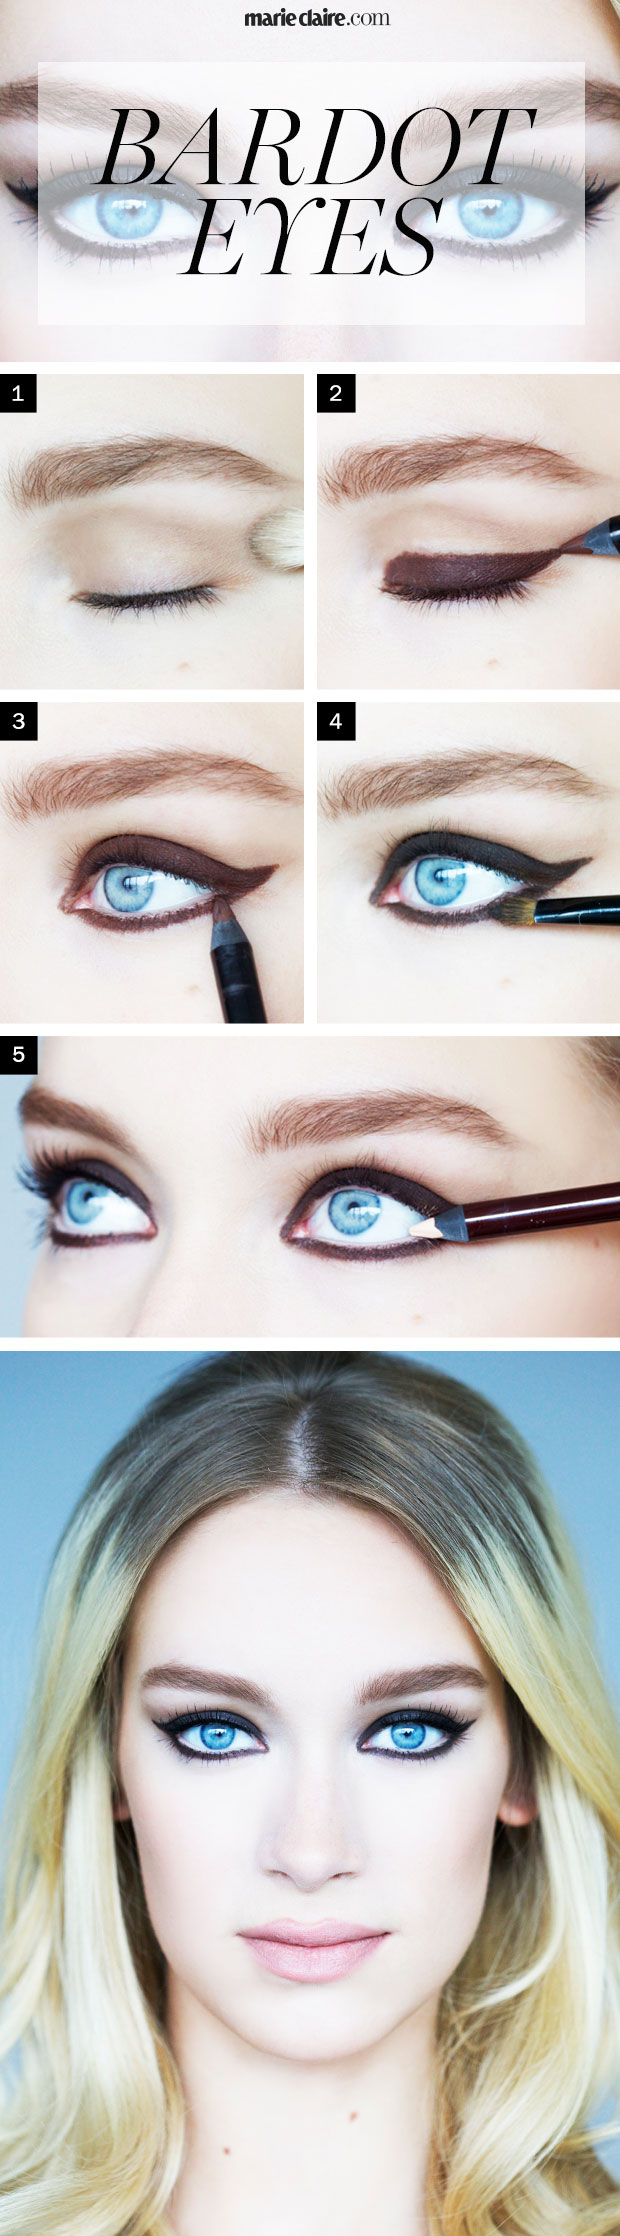 how to make eyeliner look good